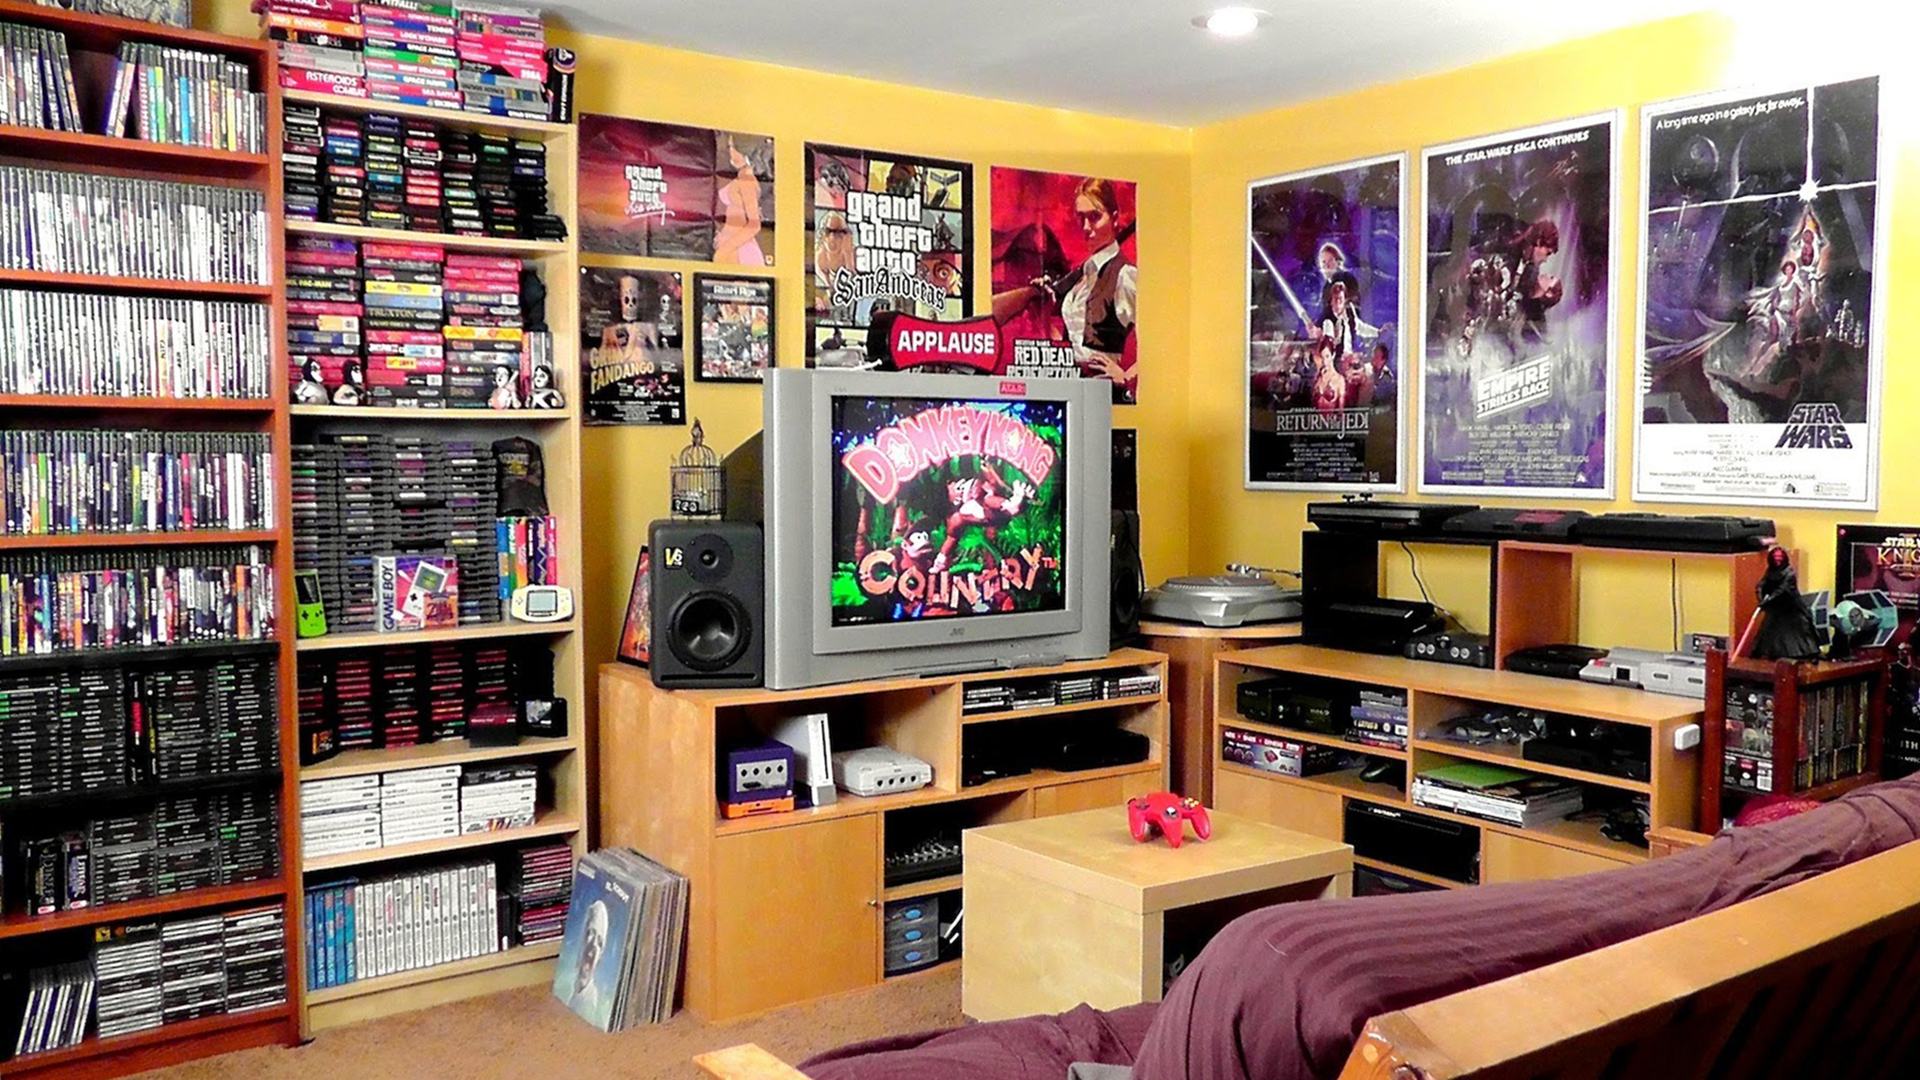 Retro gaming geek room. Virtual background to use on Zoom, Microsoft Teams, Skype, Google Meet, WebEx or any other compatible app.